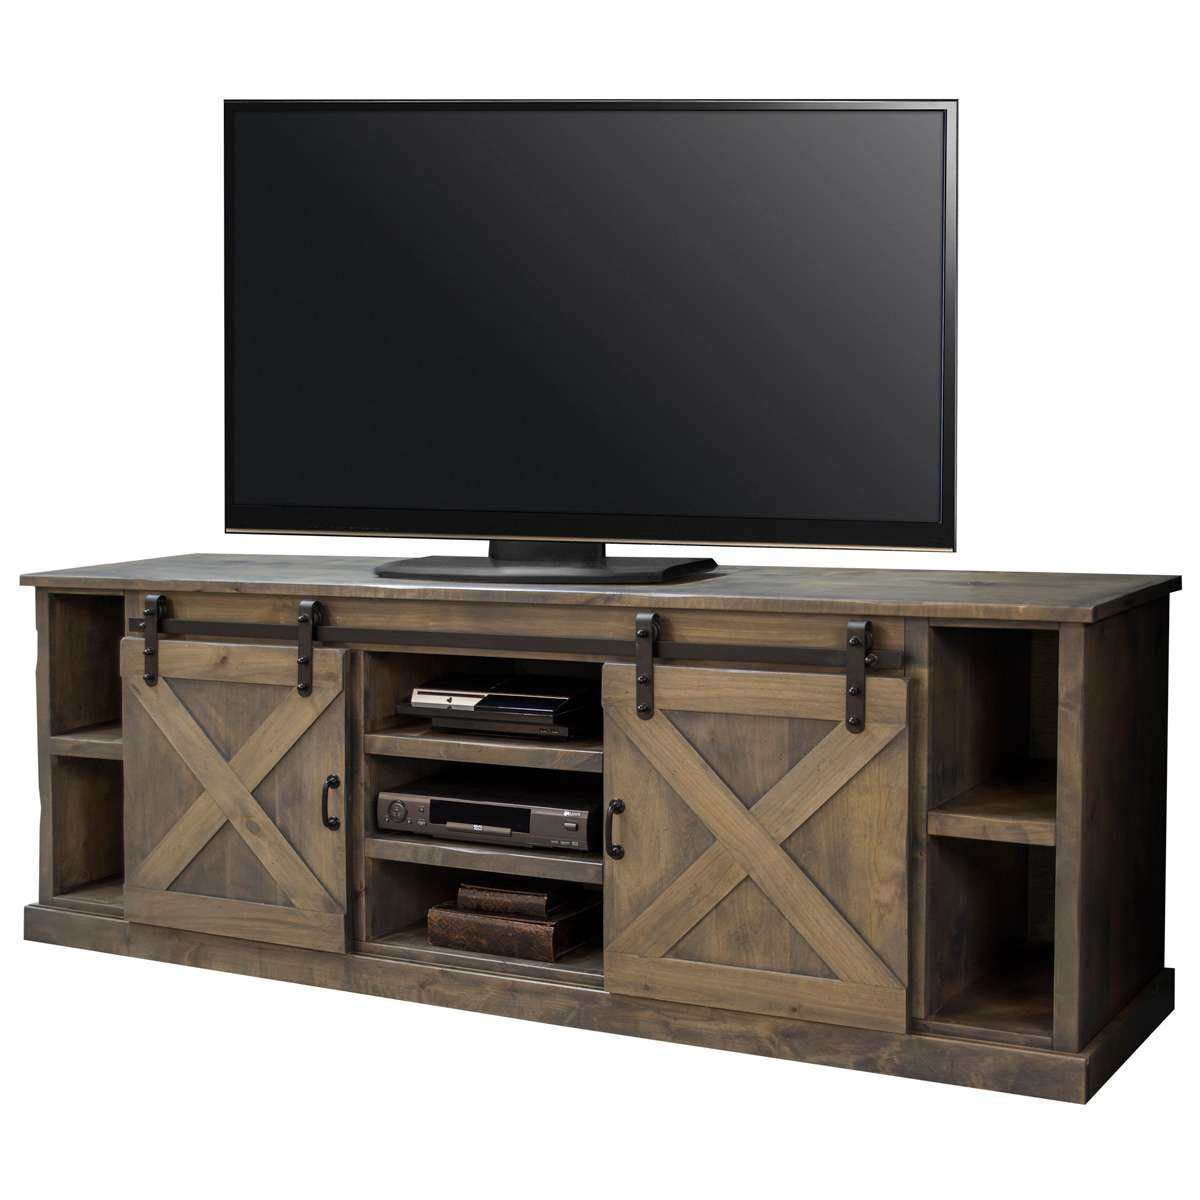 Awesome Selection Of Tv Stands (View 14 of 20)